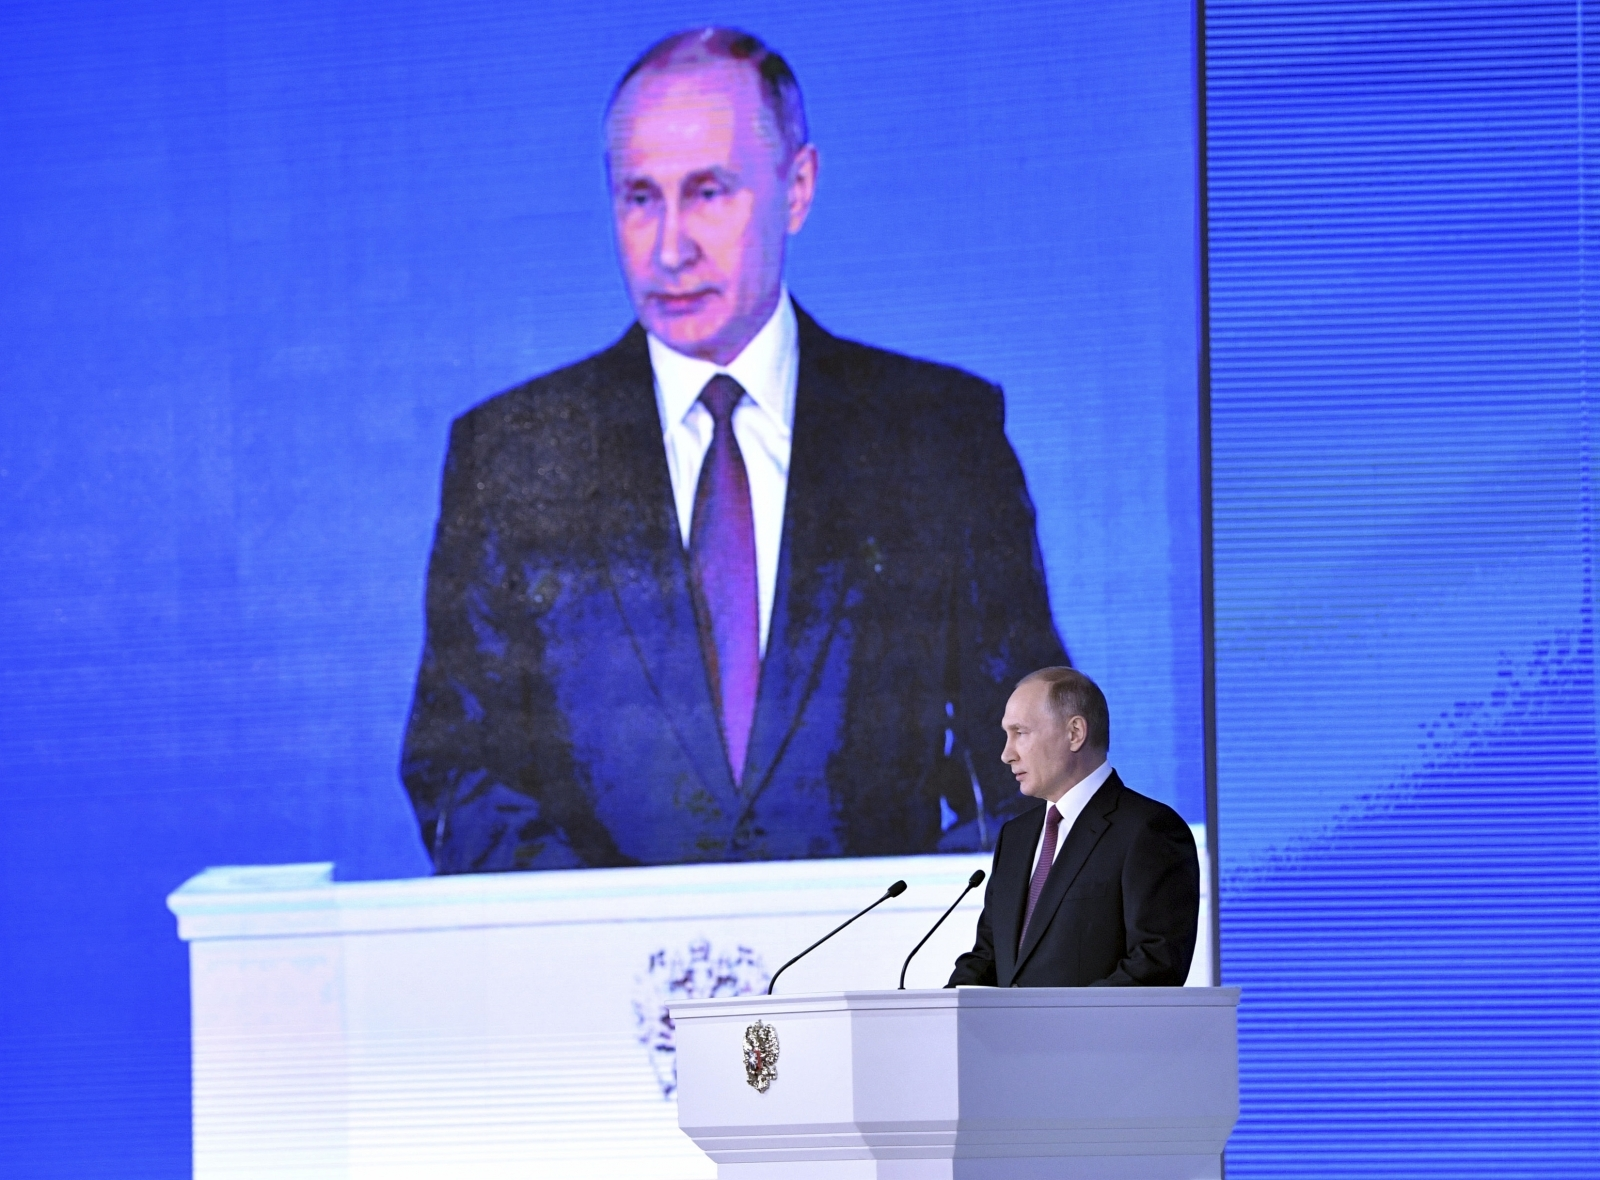 Russian president Vladimir Putin delivers his annual State of the Nation address before both houses of parliament